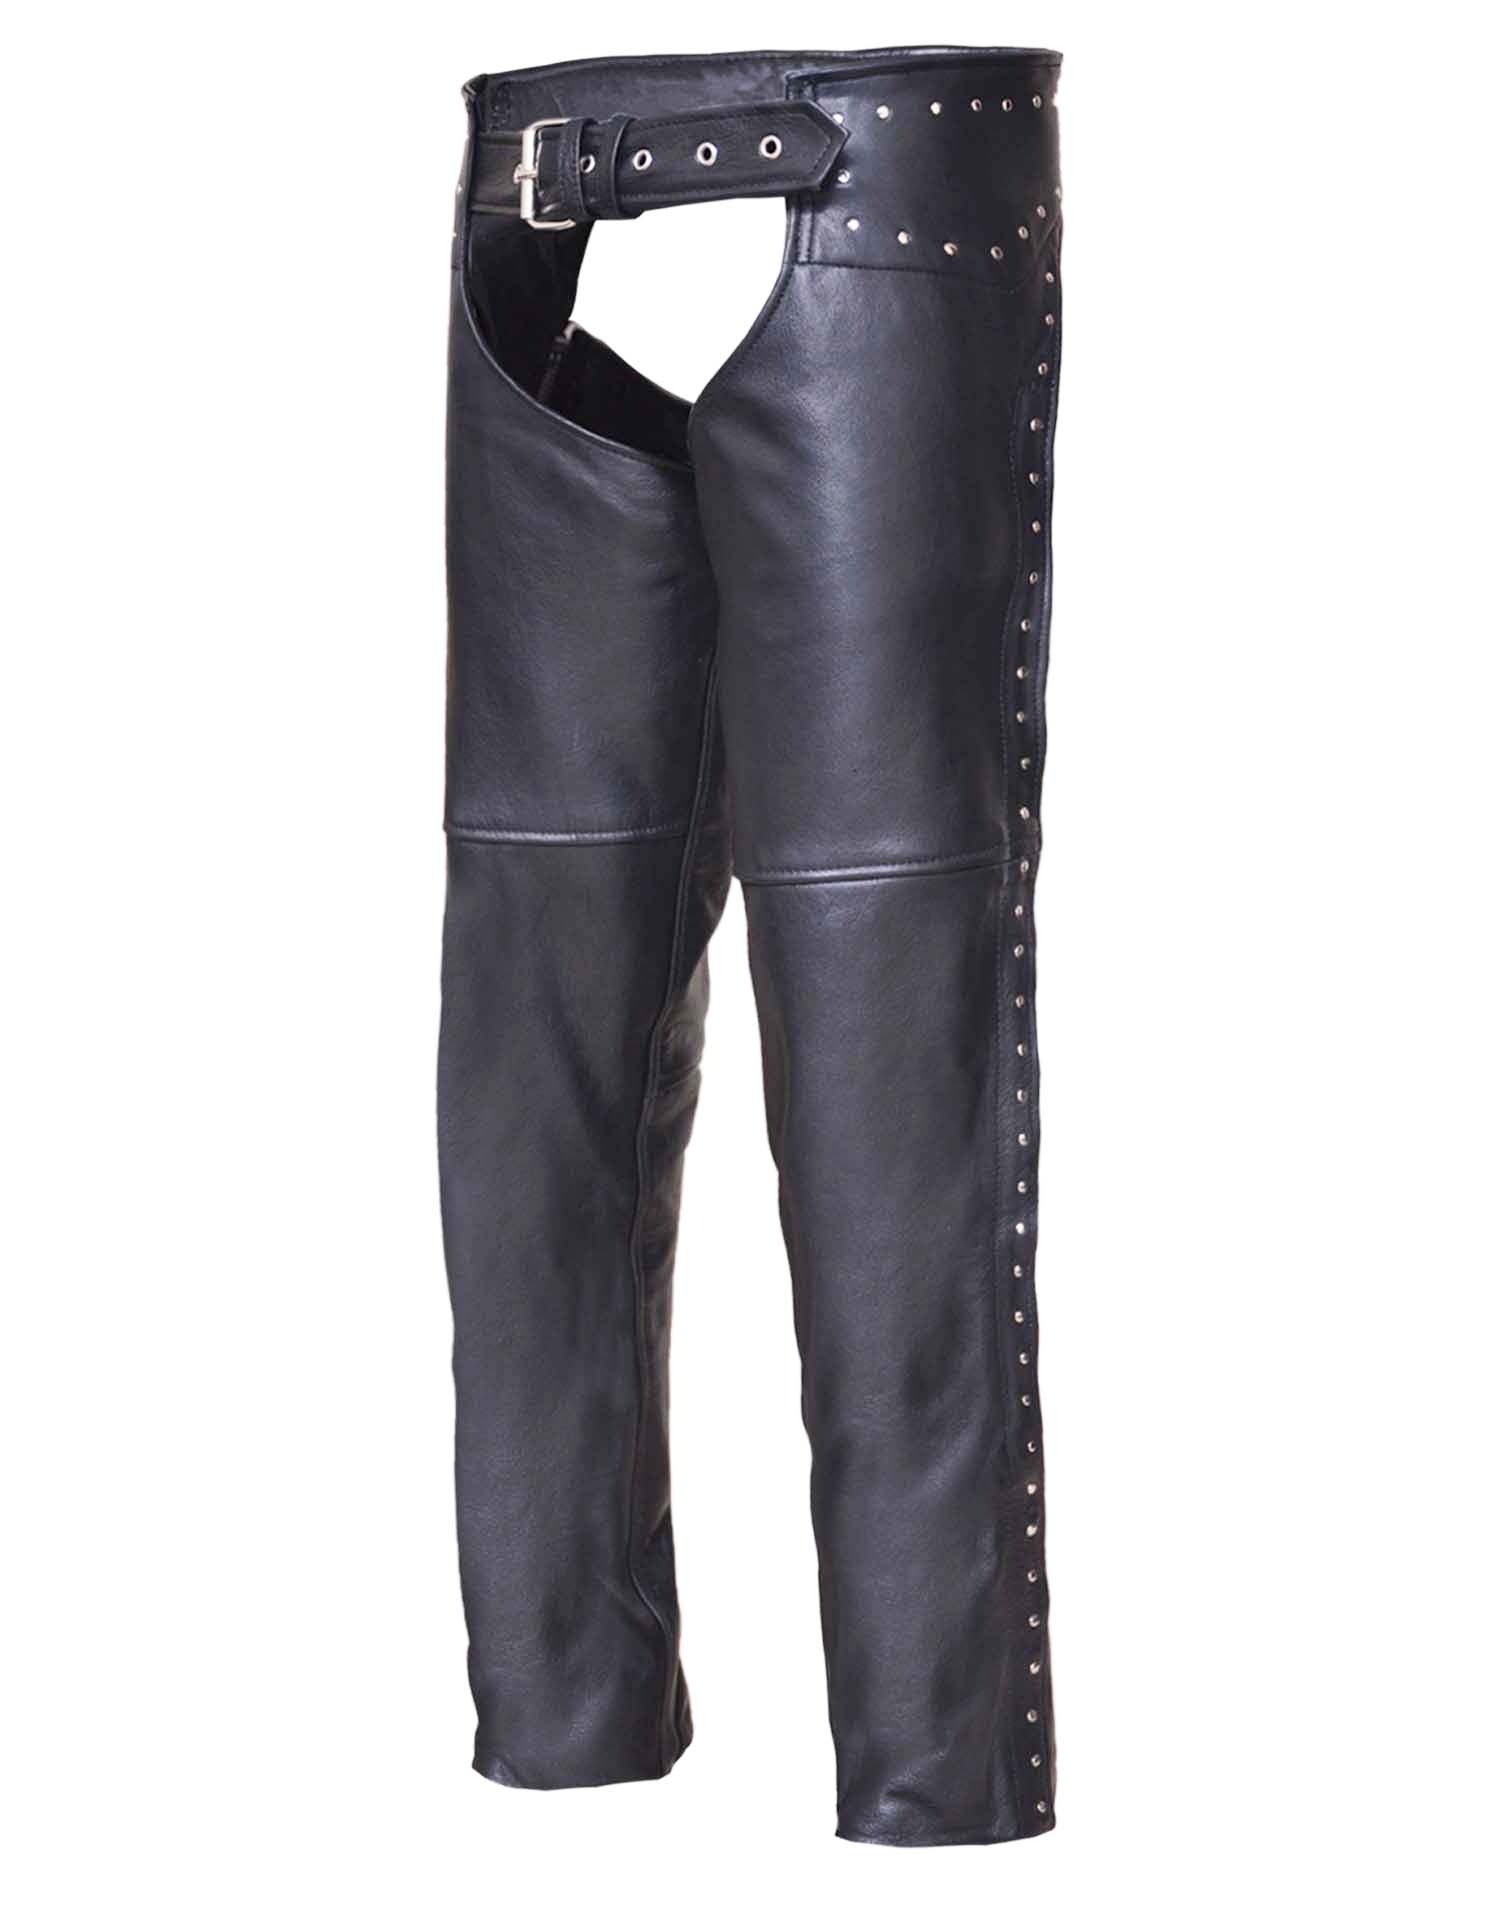 Ladies Low-Rise Premium Black Leather Chaps w/Studs (Size: 3X-Small)